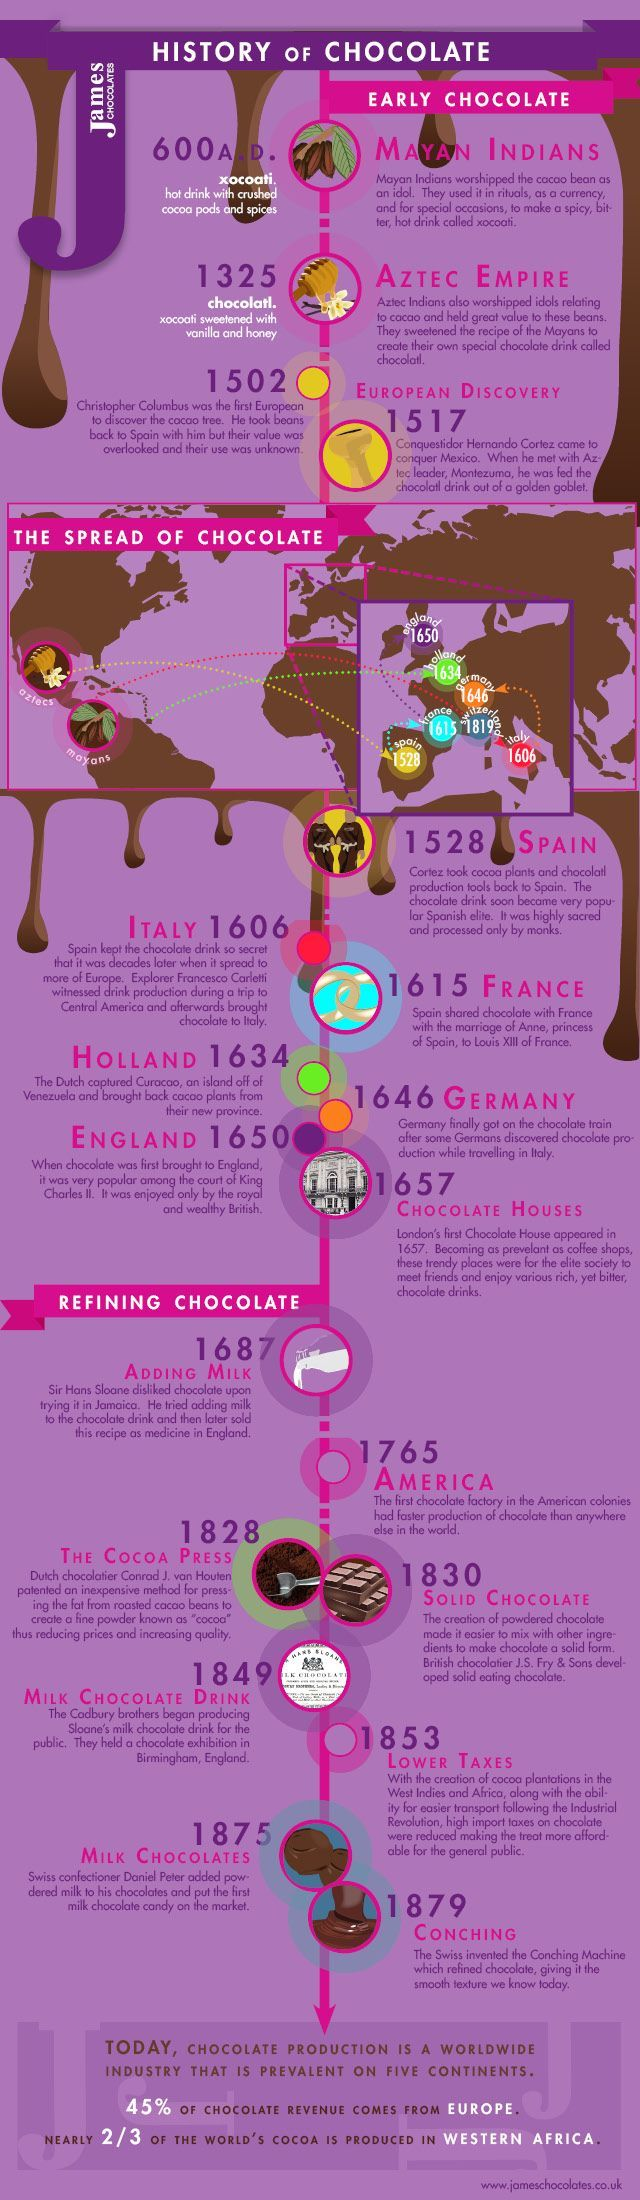 Best 25+ History of chocolate ideas on Pinterest | History of ...